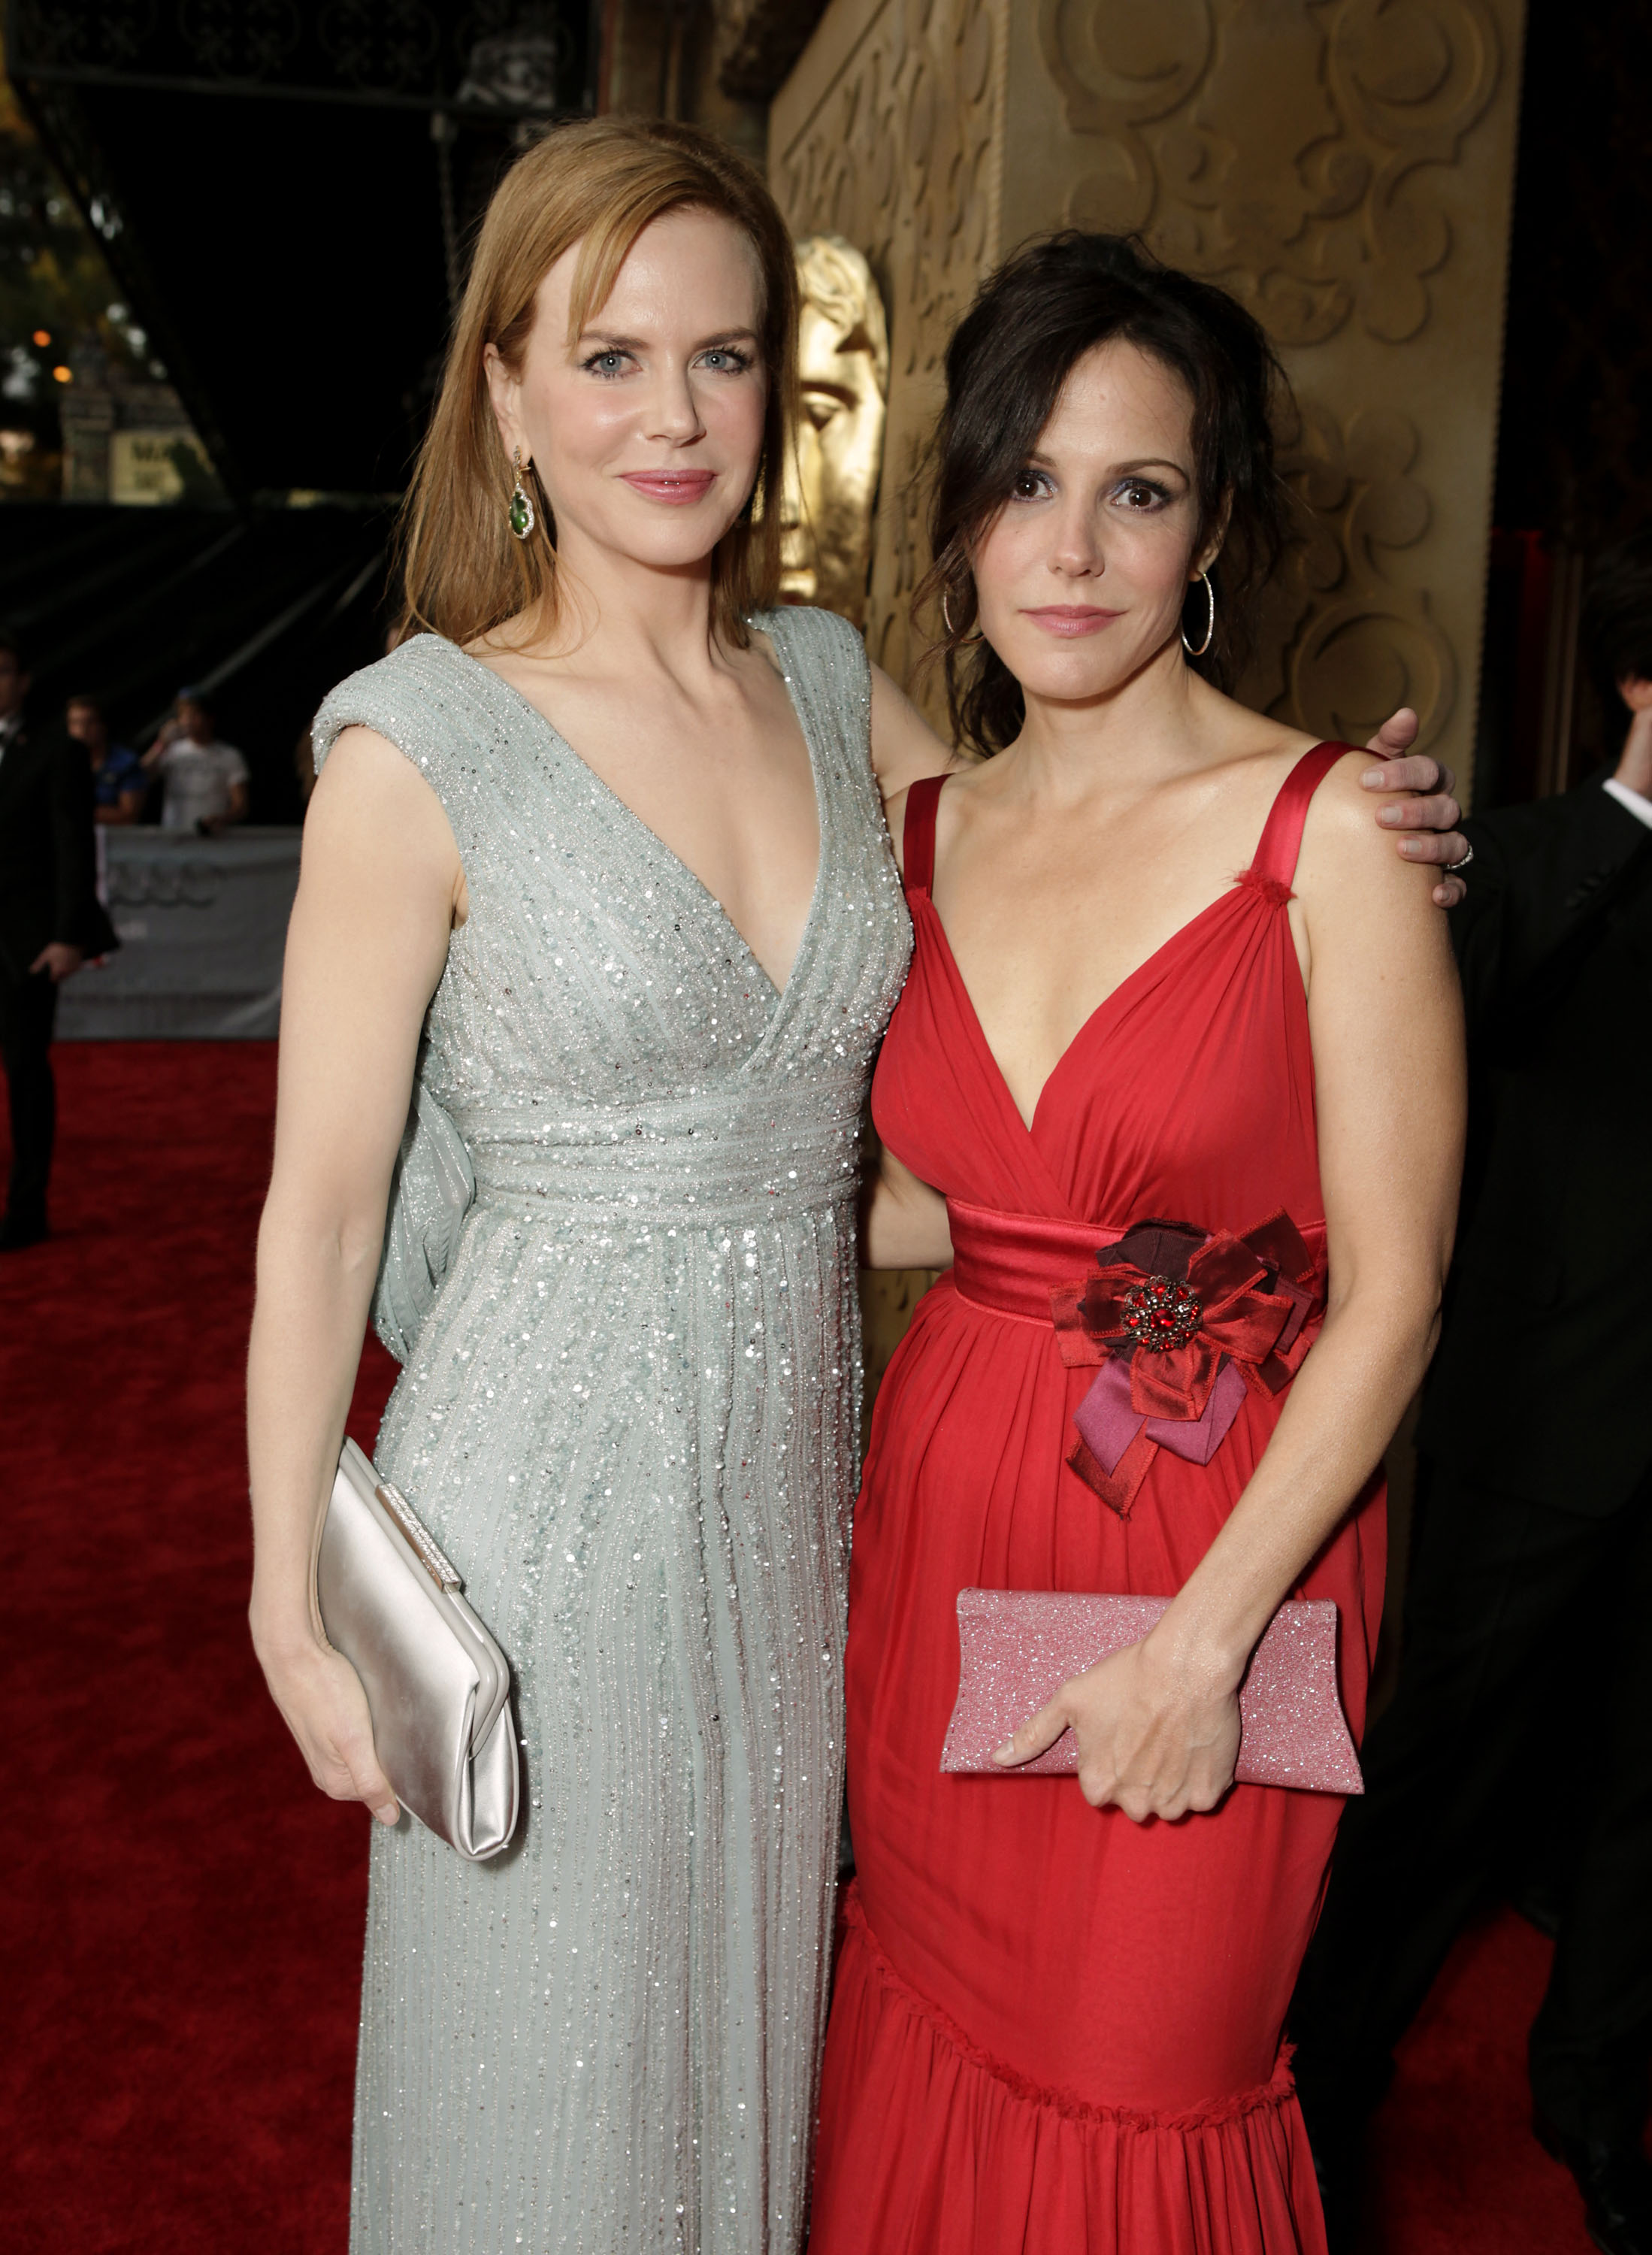 Nicole Kidman and Mary Louise Parker at the BAFTA Brits to Watch event in LA.